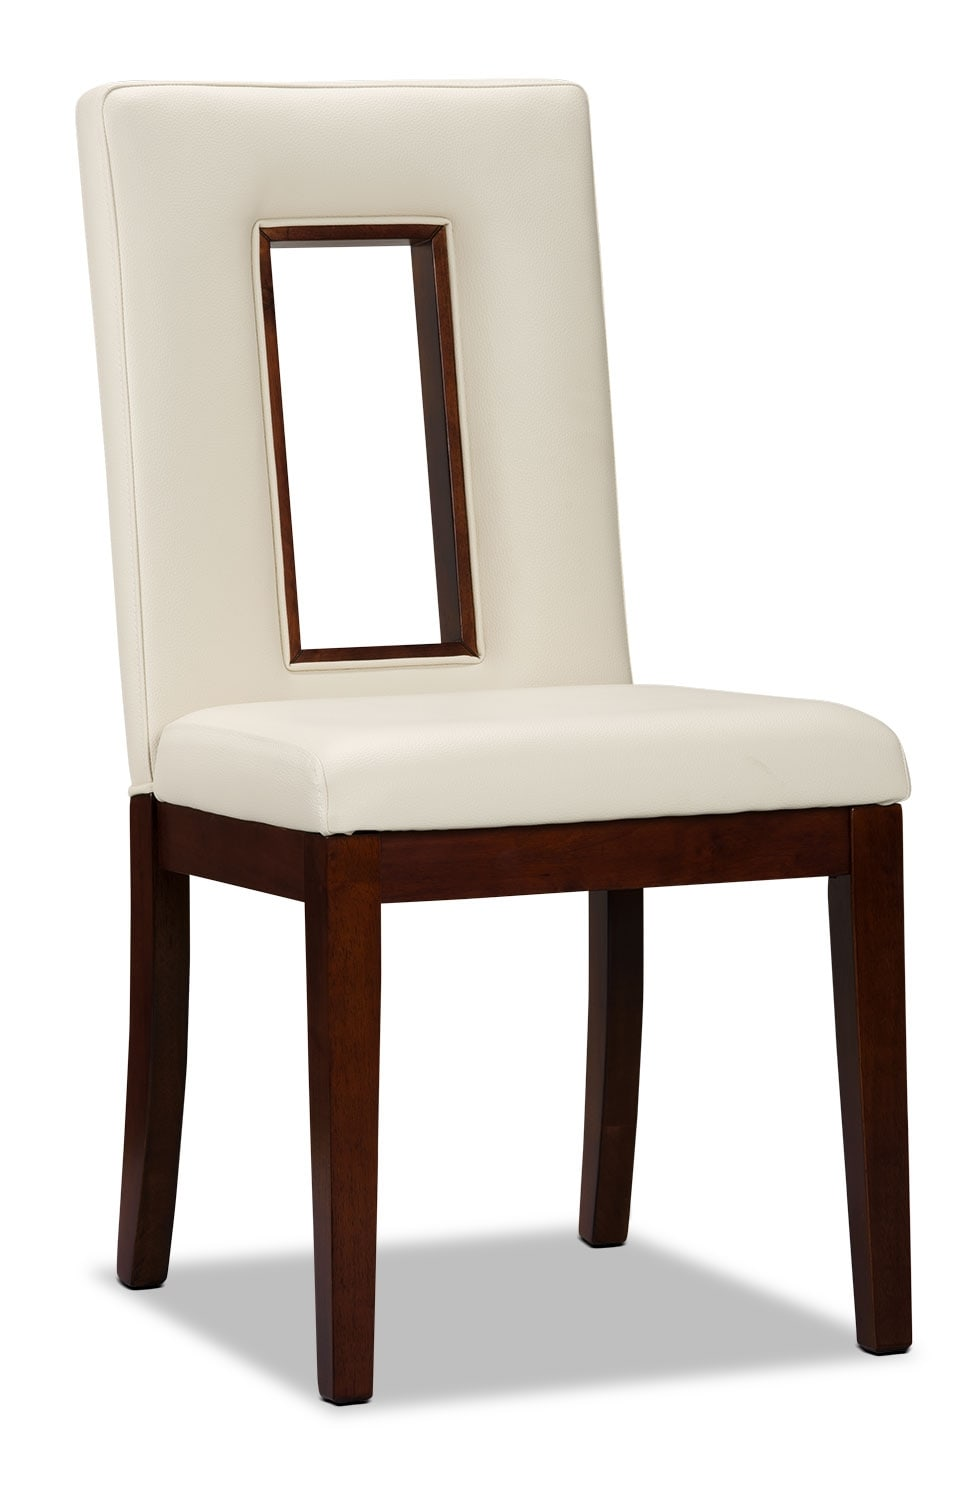 Dining Room Furniture - Enzo Dining Chair